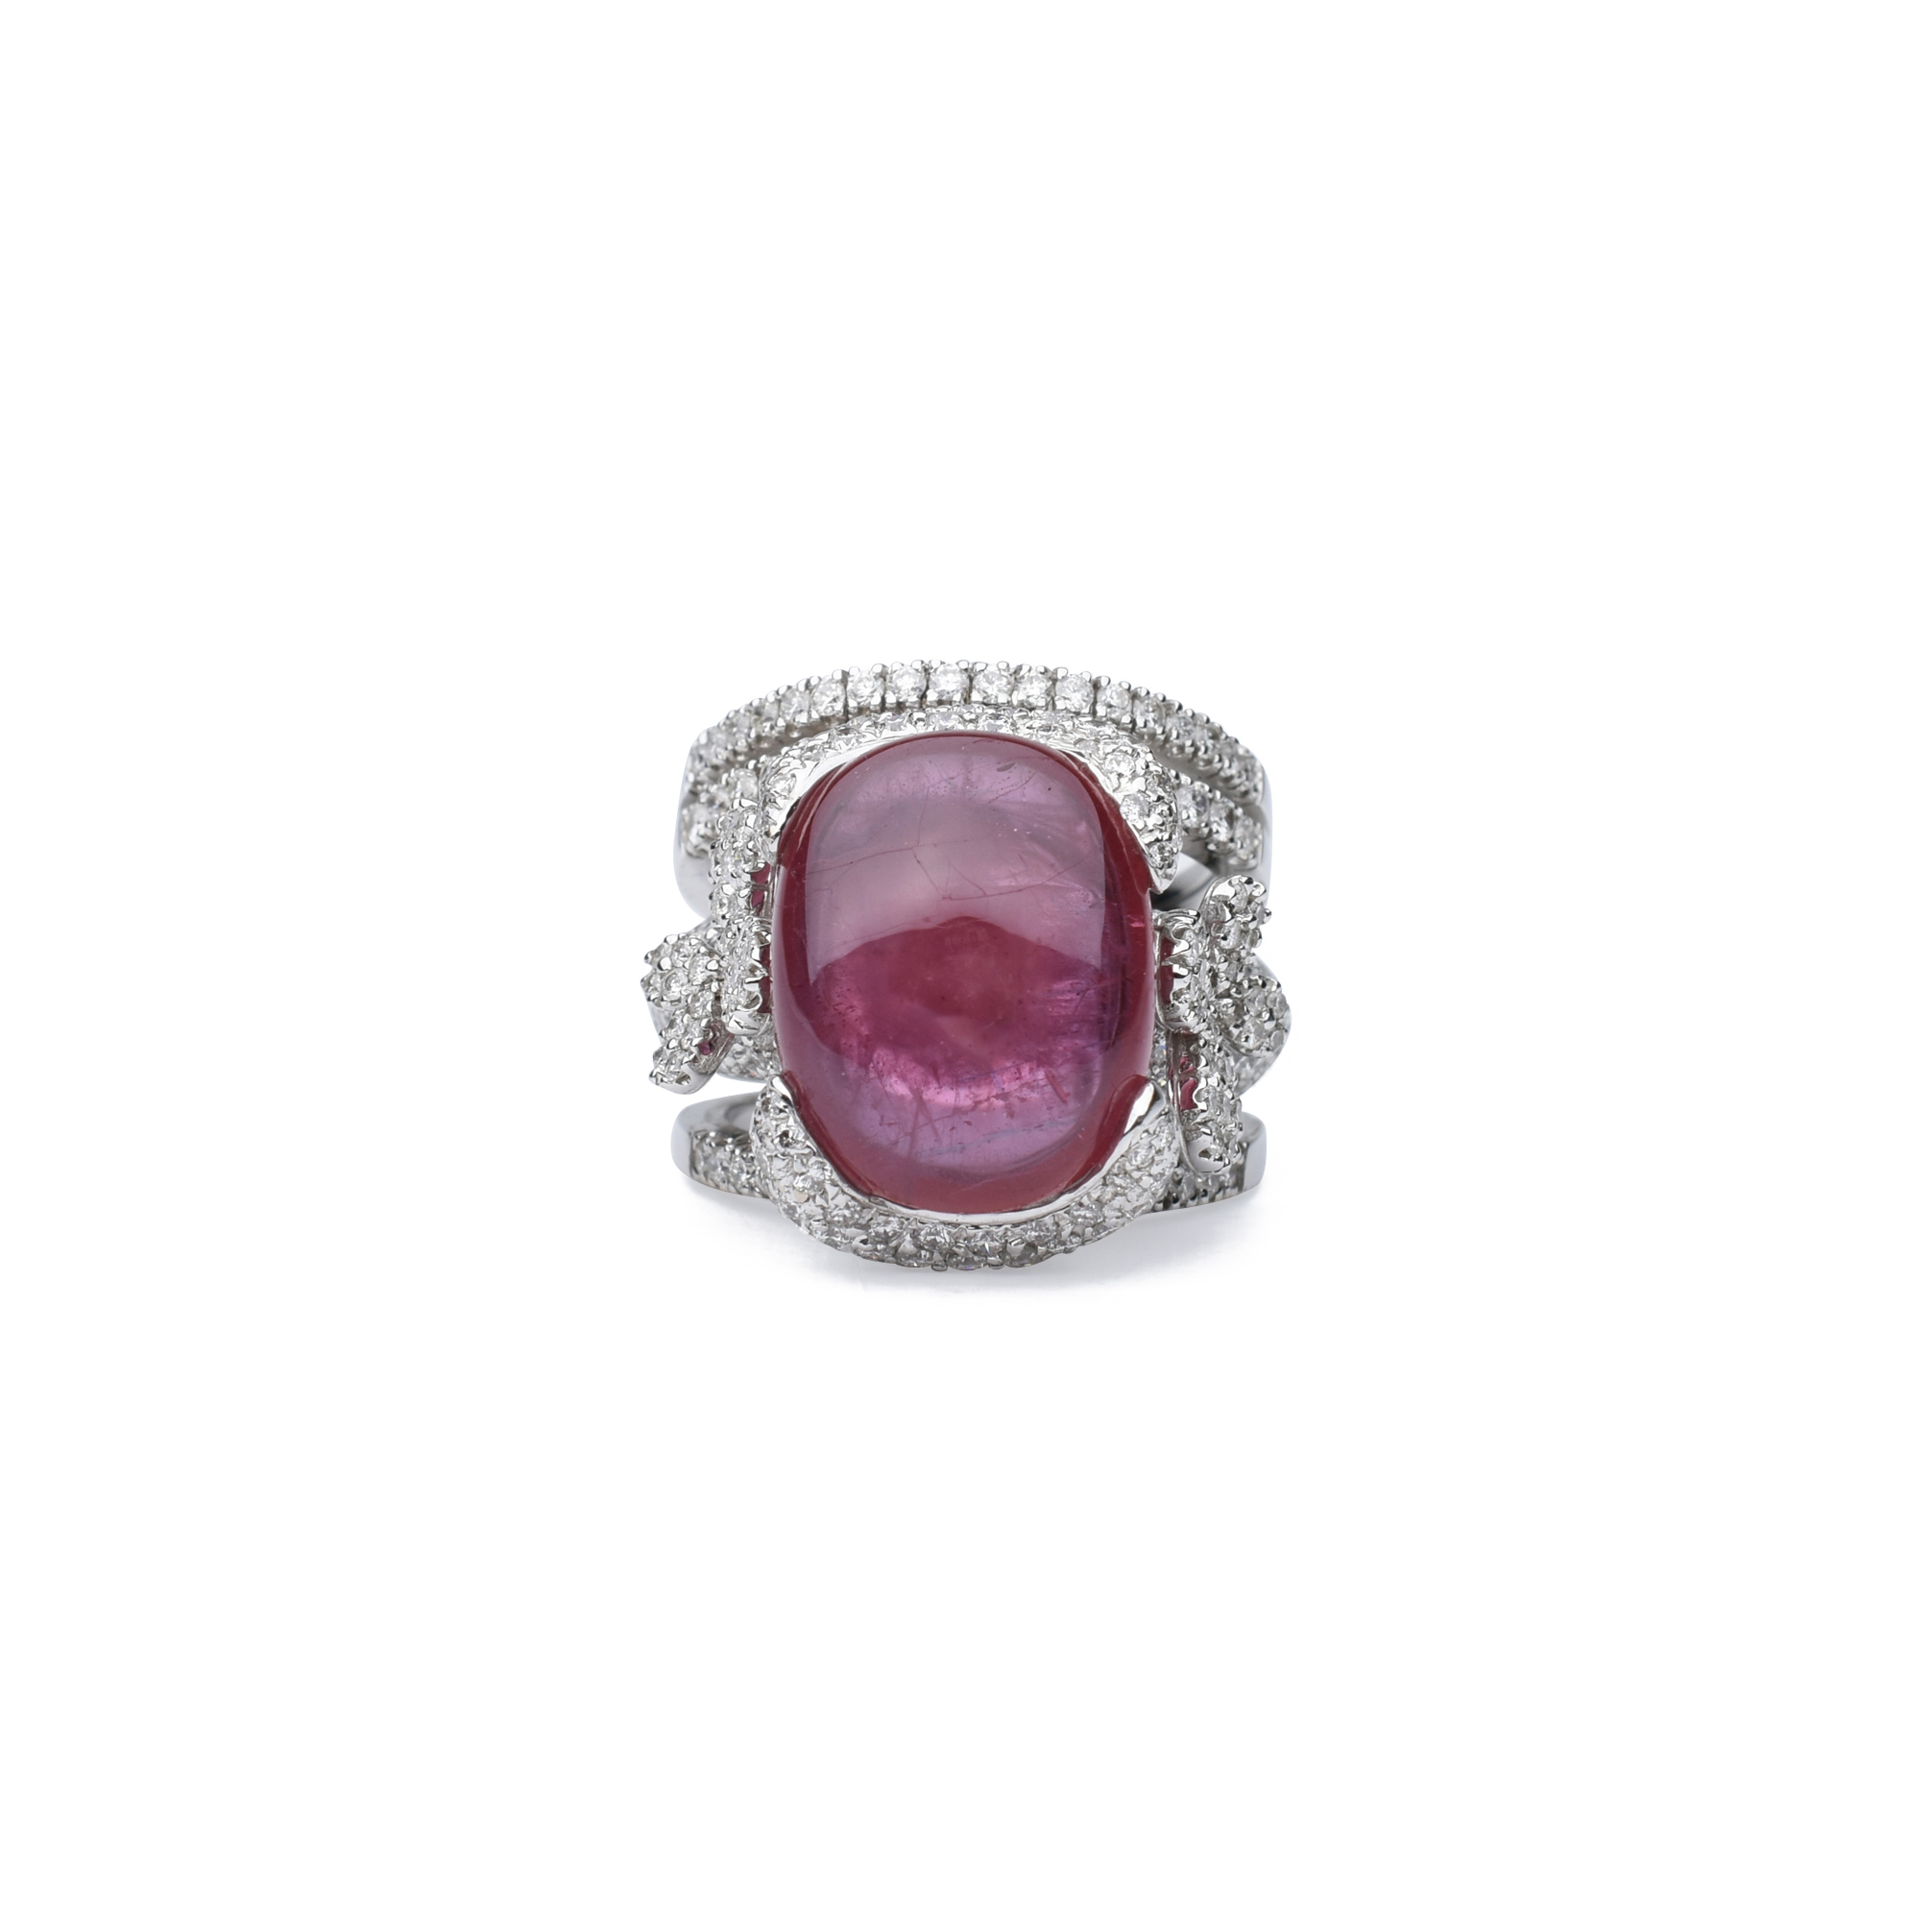 fifth cabochon diamond the second ruby products flower ring hand collection